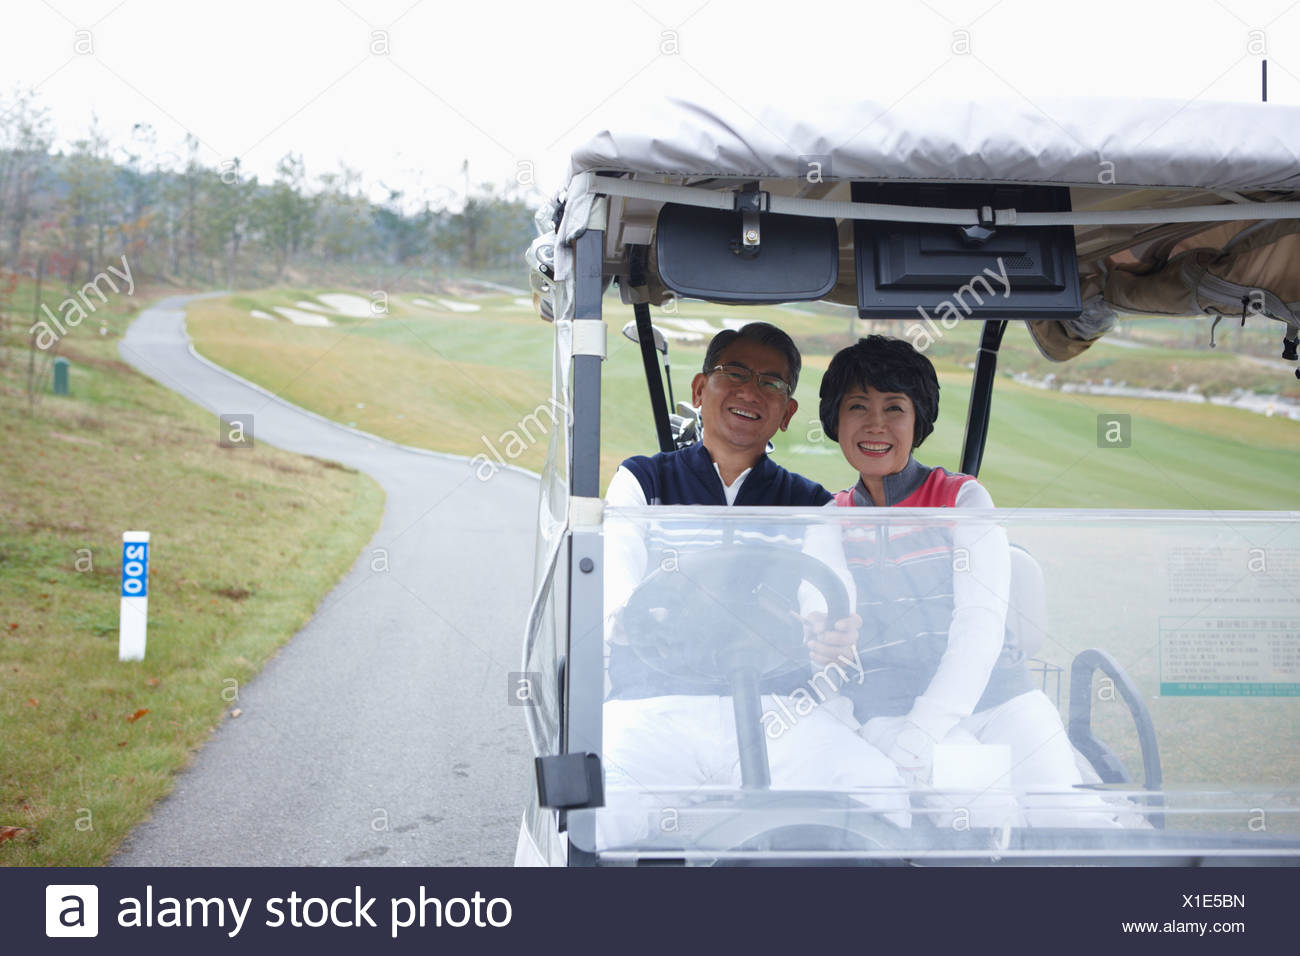 middle aged couple on golf cart - Stock Image